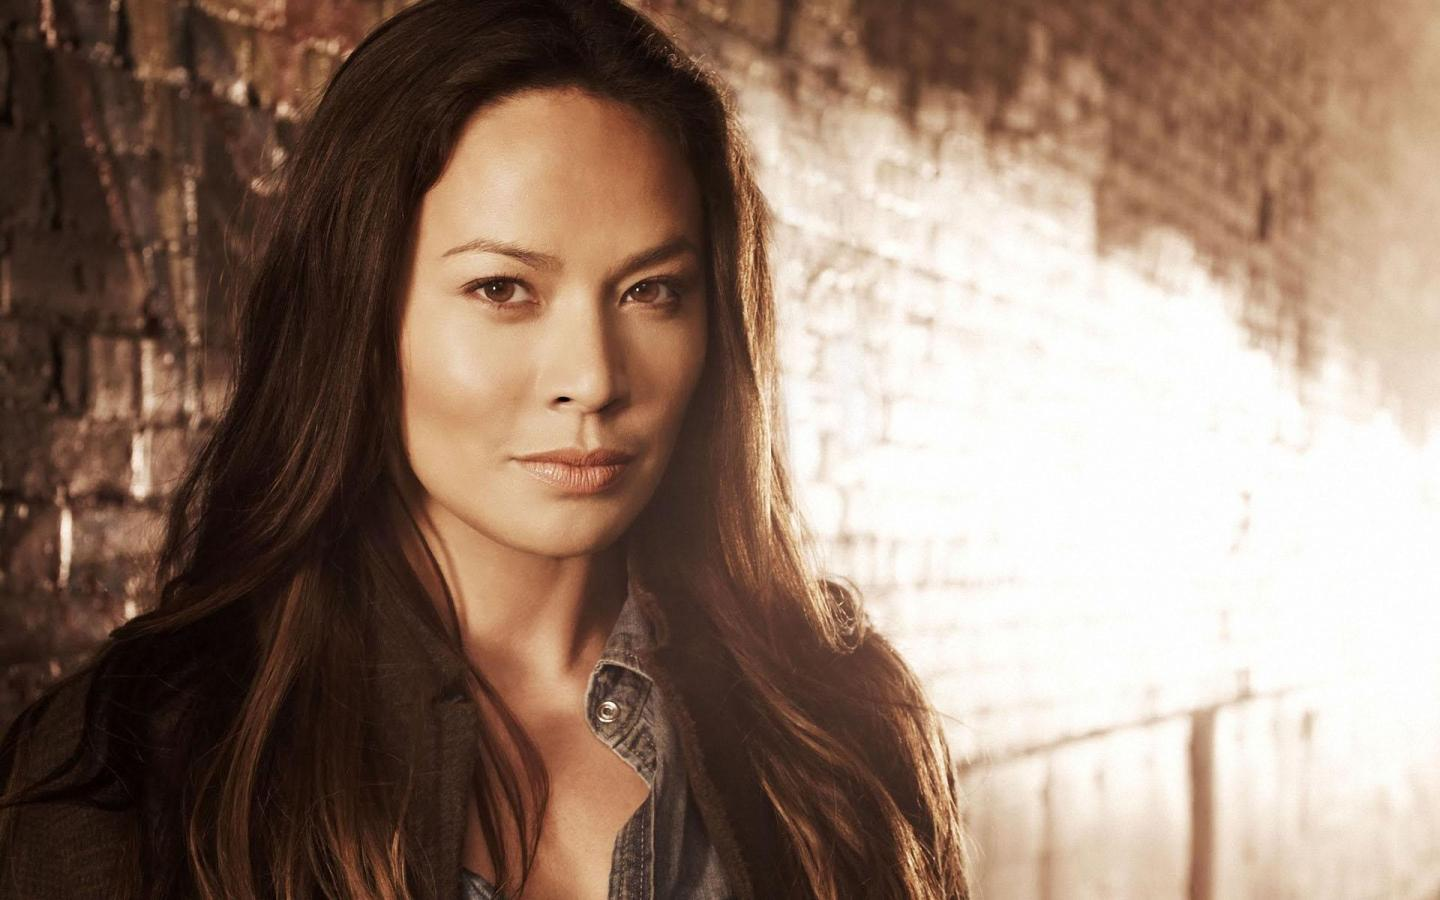 Wallpaper Falling Skies Moon Bloodgood Moon Bloodgood Falling Skies Promos